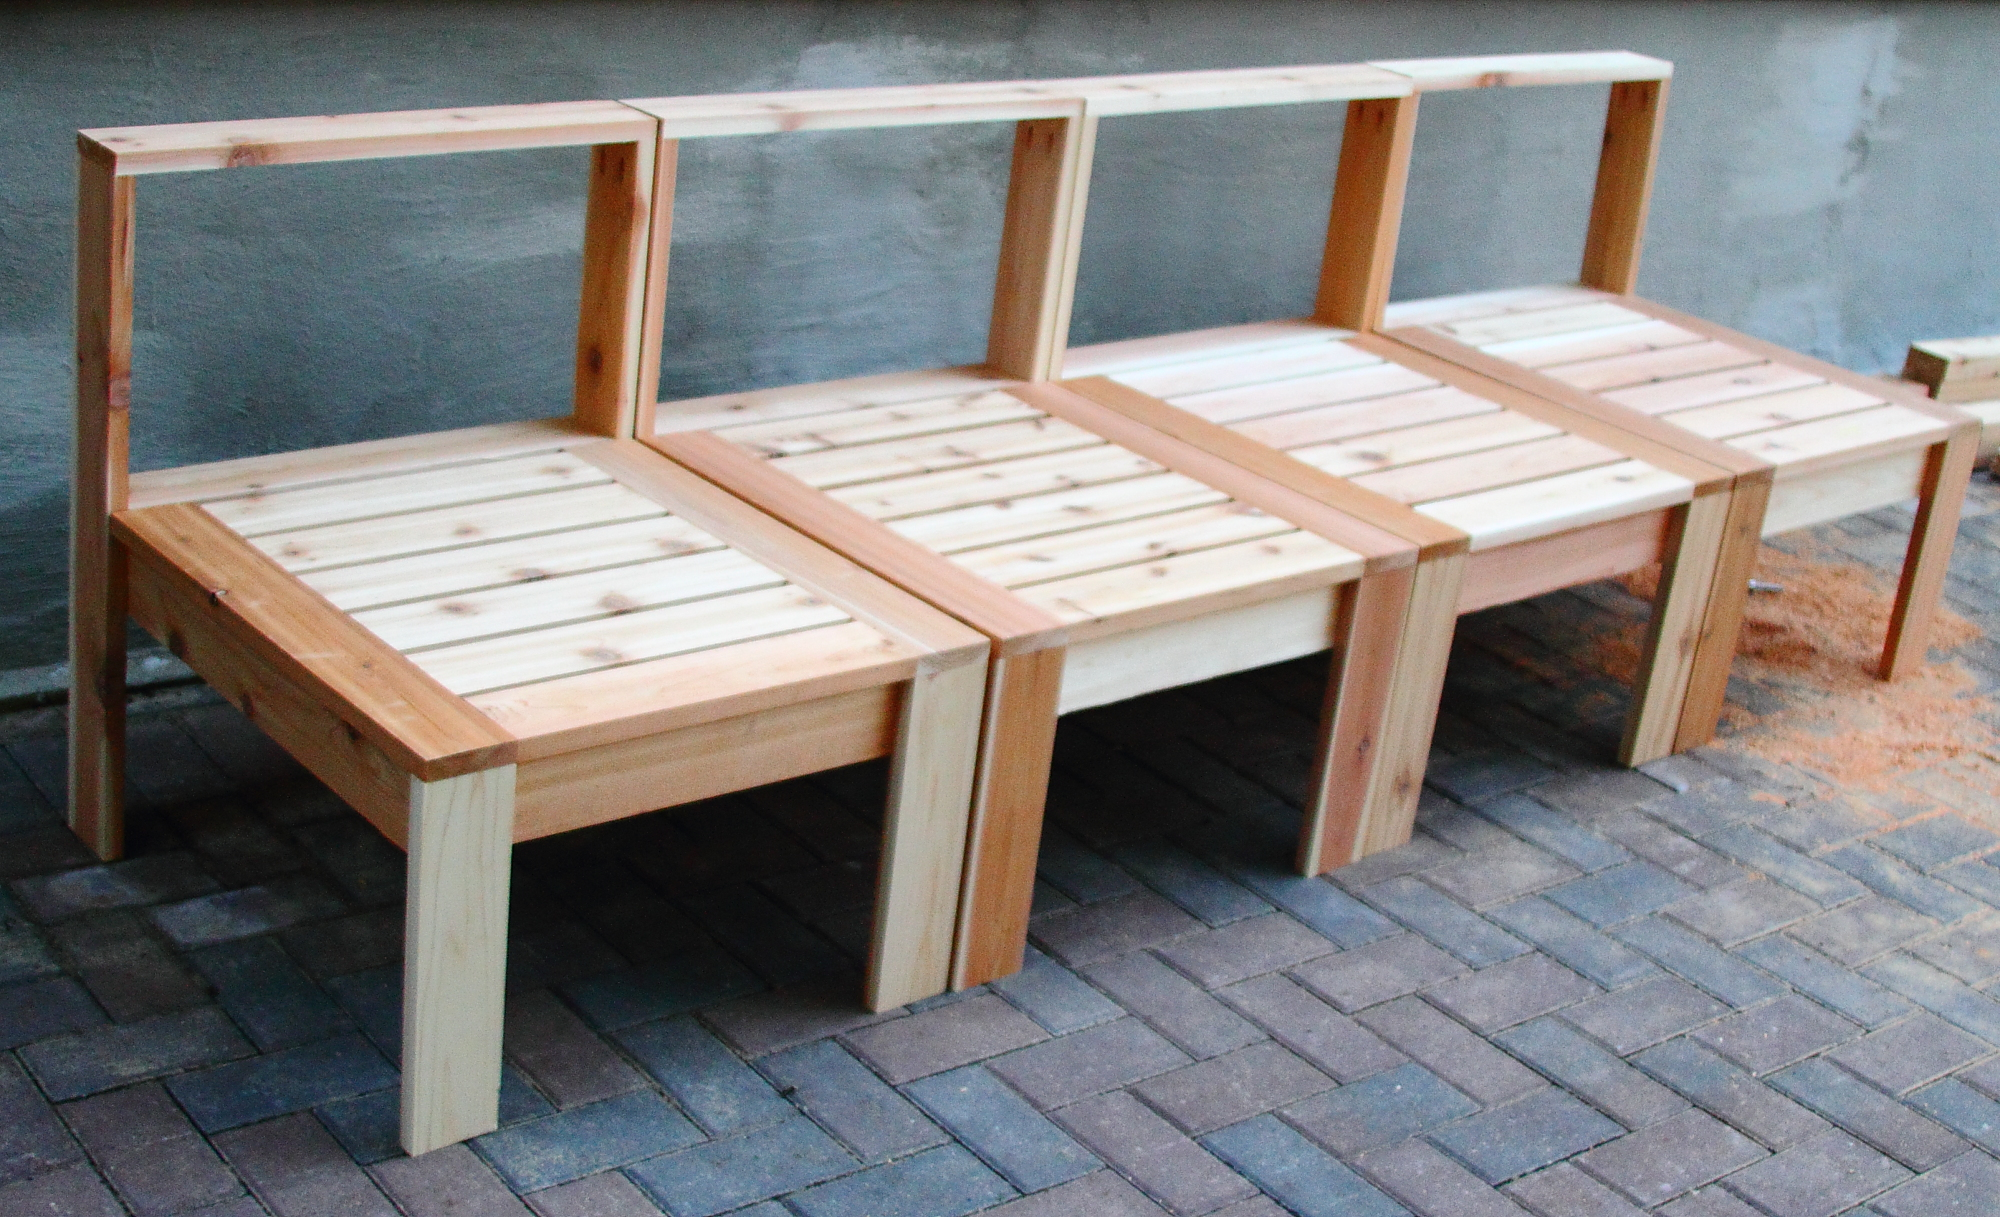 ... Furniturehomemade Wood Outdoor Furniture. Download